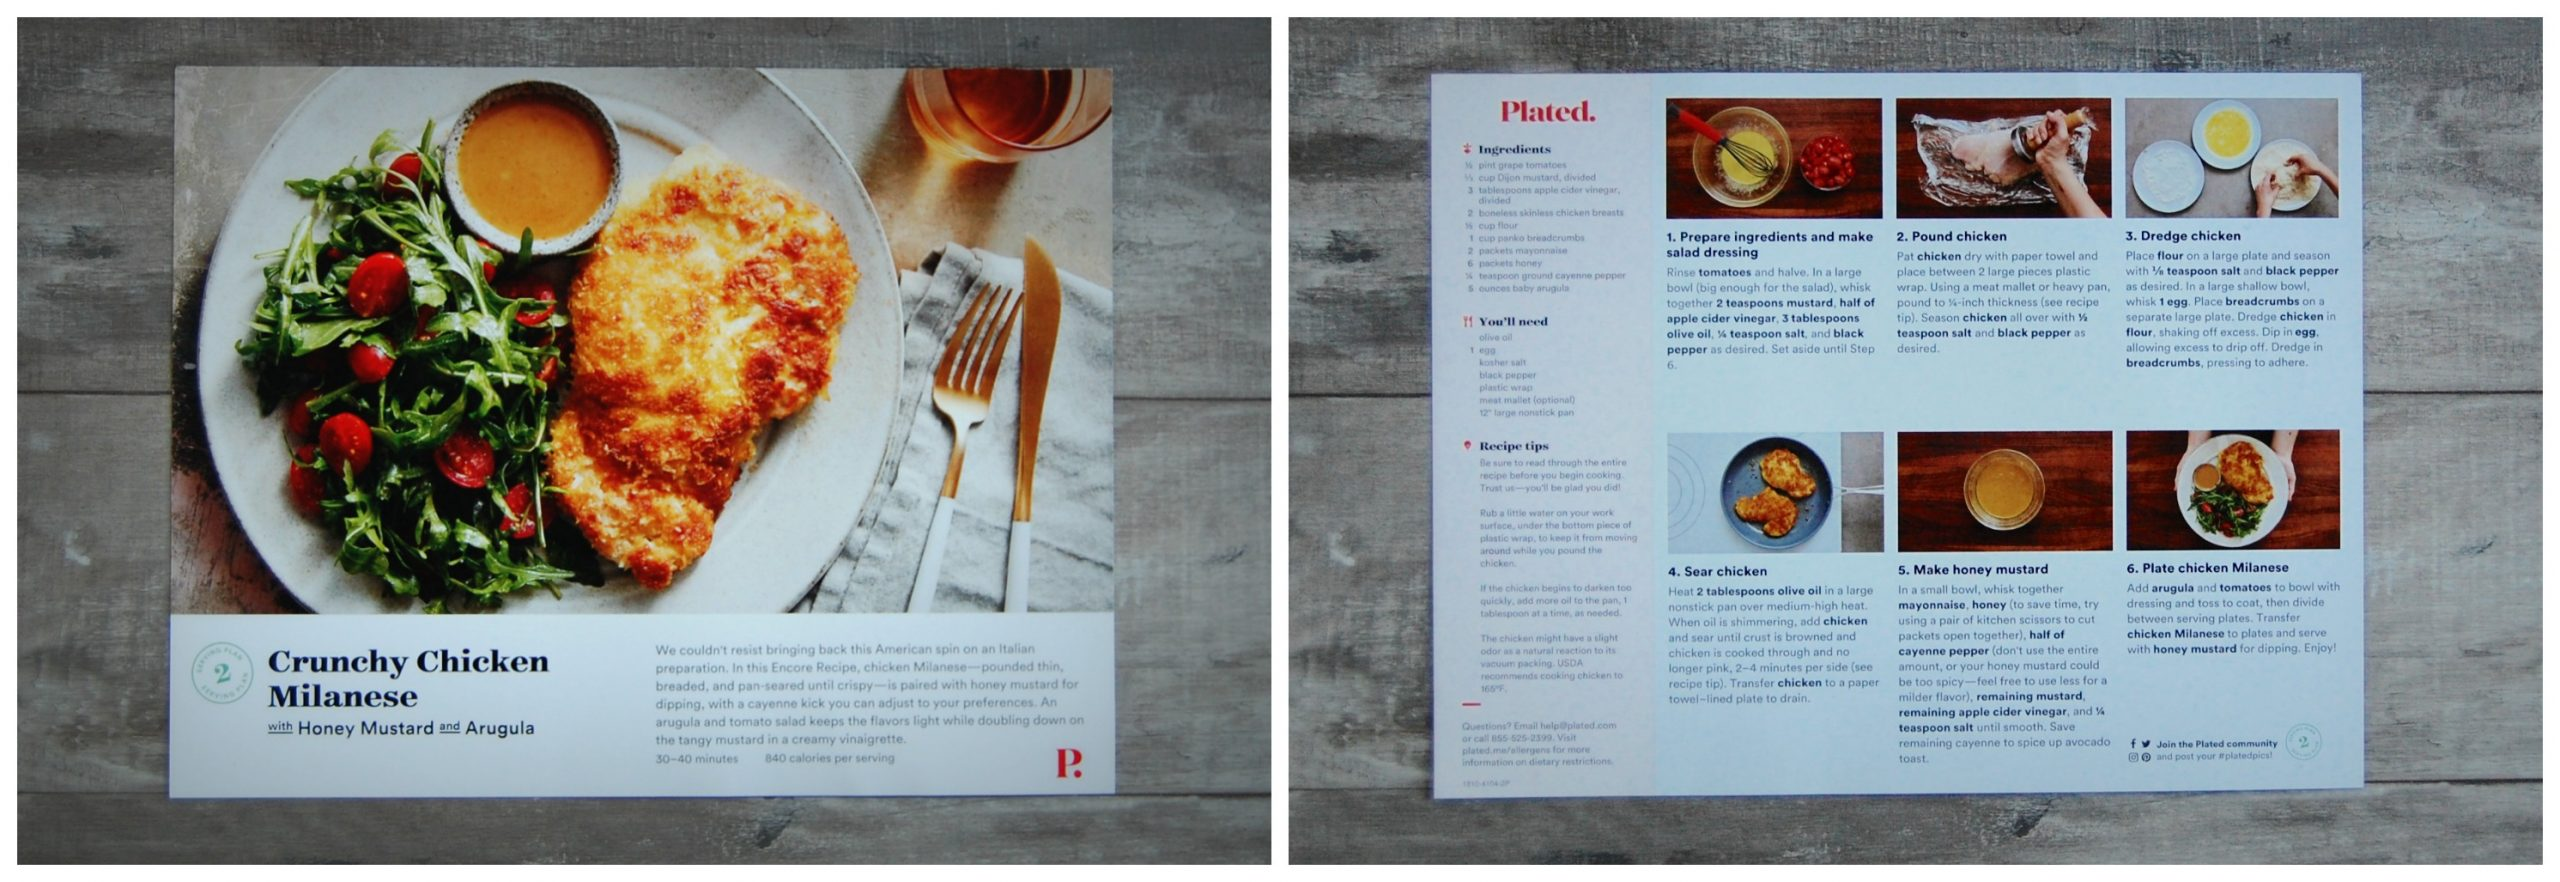 Plated: What You Need to Know Before Trying this Meal Kit Service